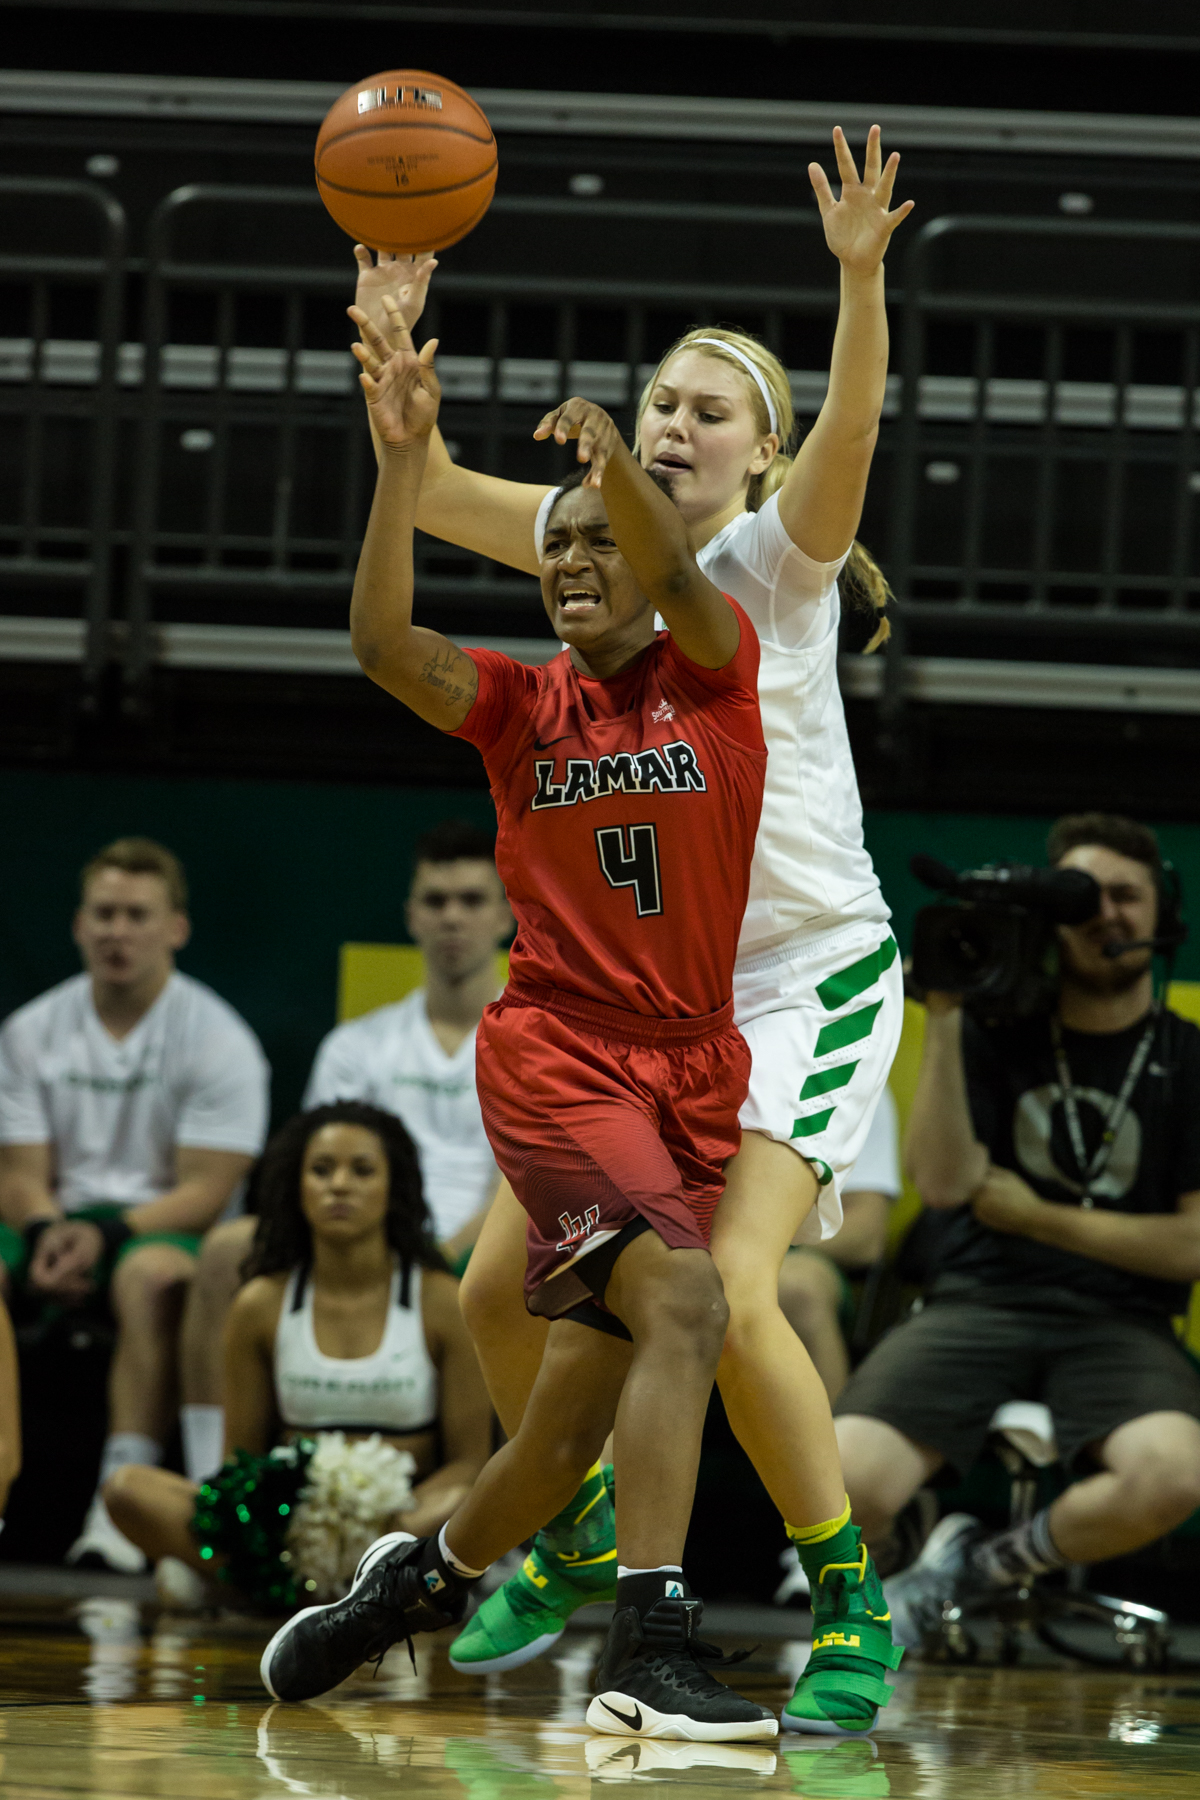 Lamar Cardinals point guard Briana Laidler (#4) passes the ball under intense pressure from an Oregon defender. The Oregon Ducks Women's basketball team won their season opener against the Lamar Cardinals 84-67.  Photo by Austin Hicks, Oregon News Lab